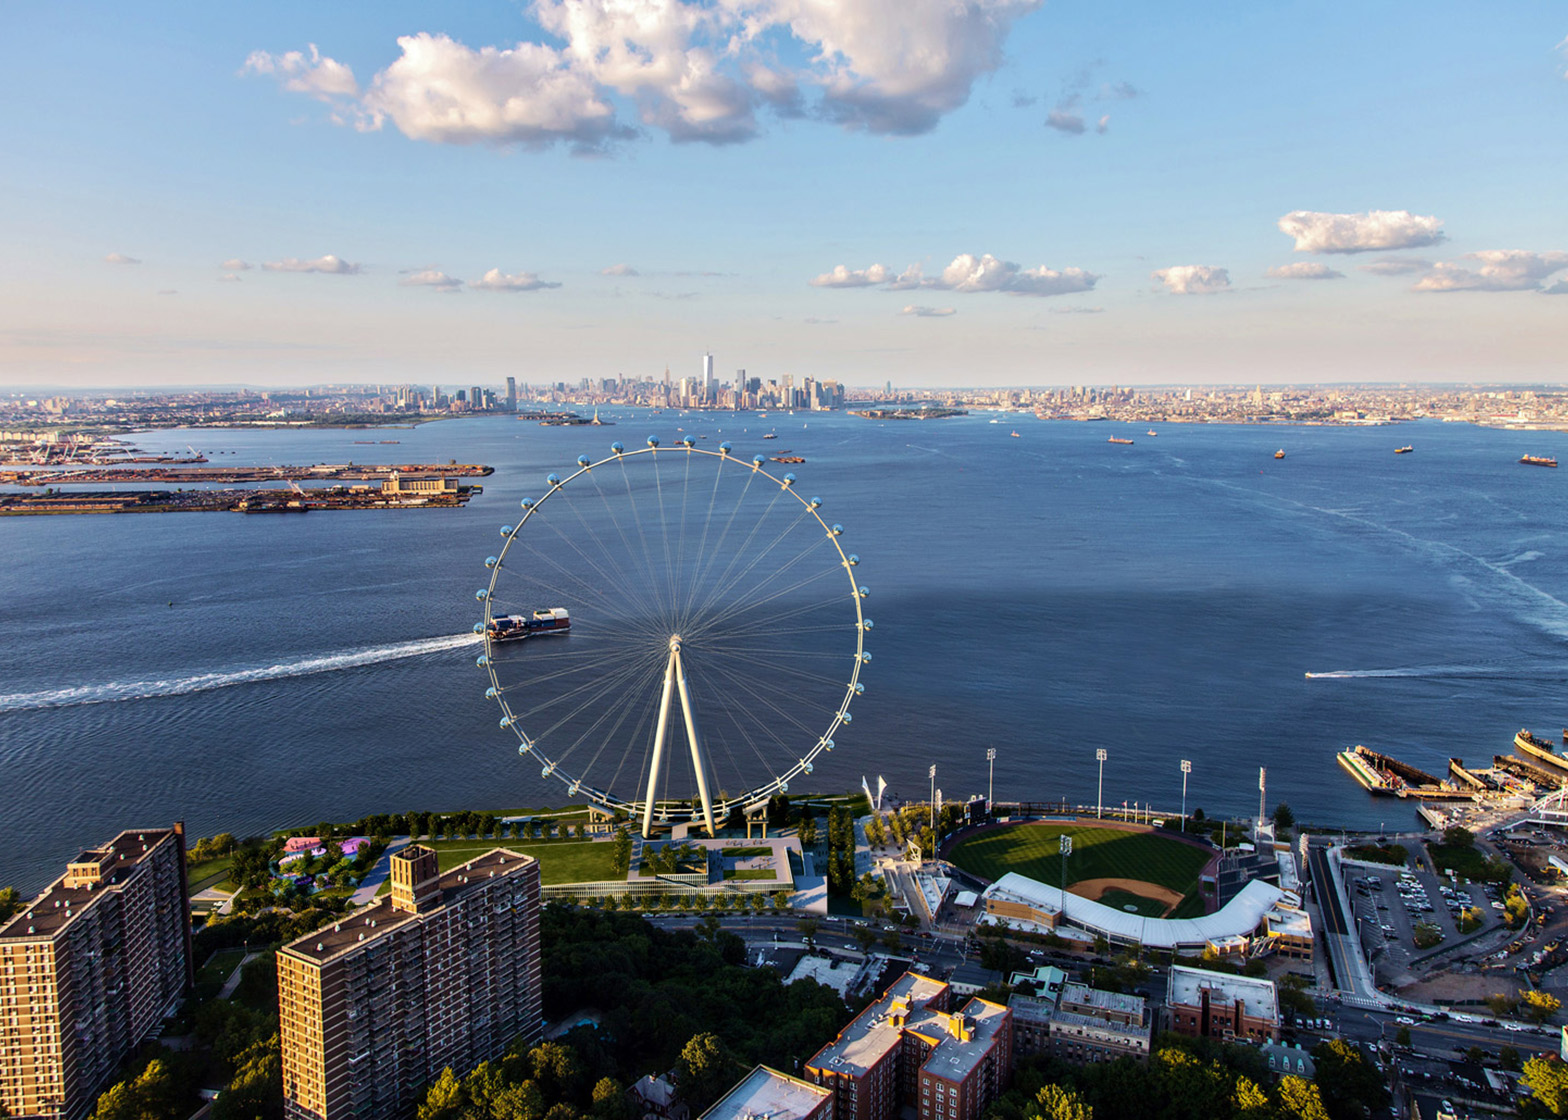 New York Wheel by Perkins Eastman and S9 Architecture